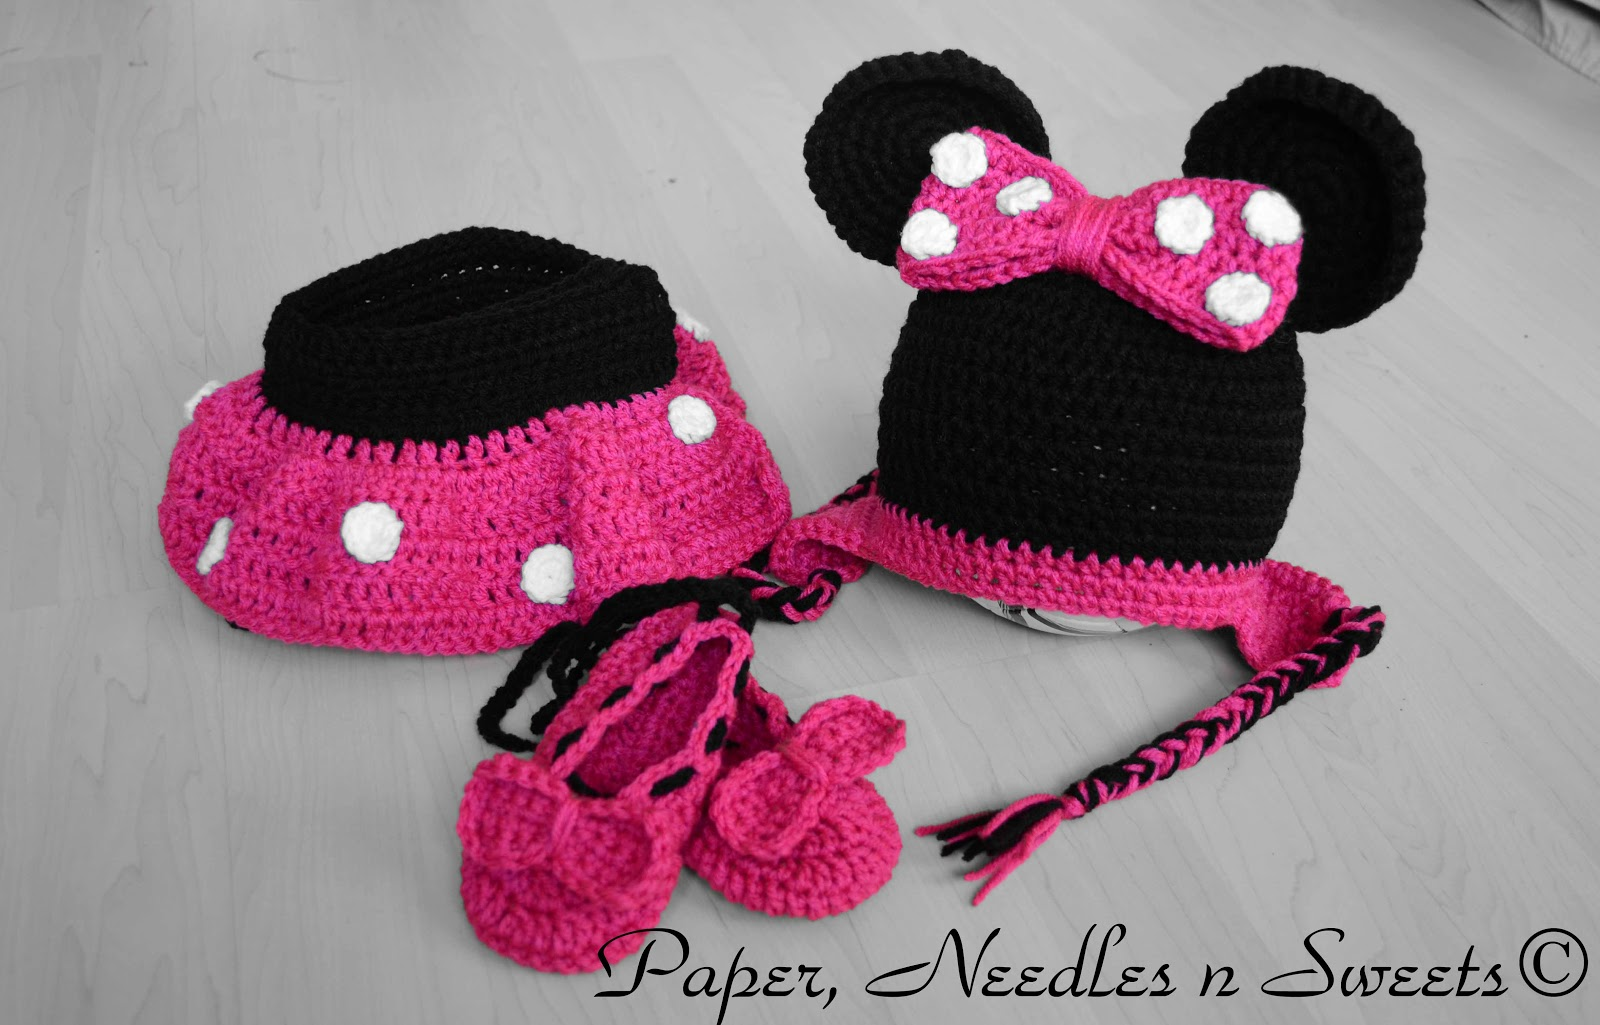 Crochet Patterns For Minnie Mouse : Image Minnie Mouse Crochet Pattern Free Download